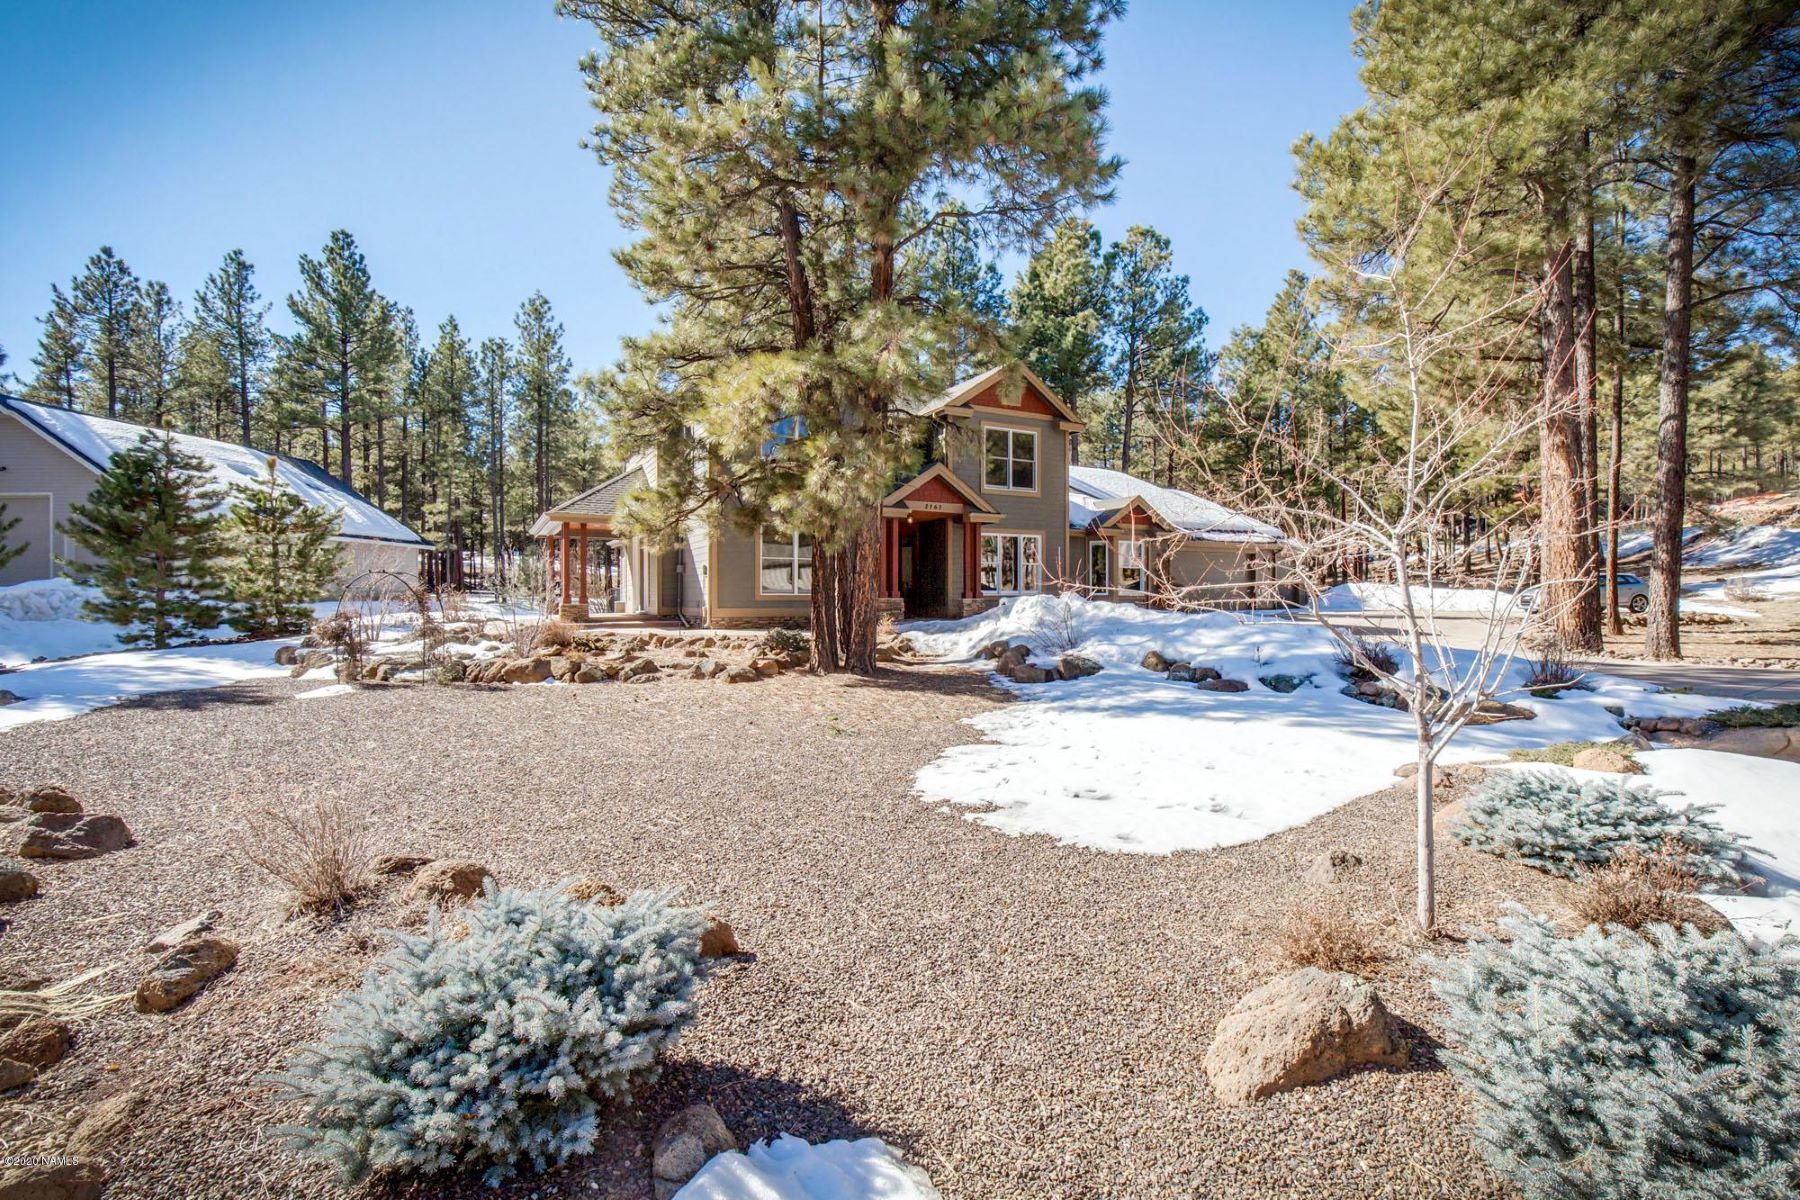 Single Family Homes for Active at Linwood 2167 N Fremont BLVD Flagstaff, Arizona 86001 United States